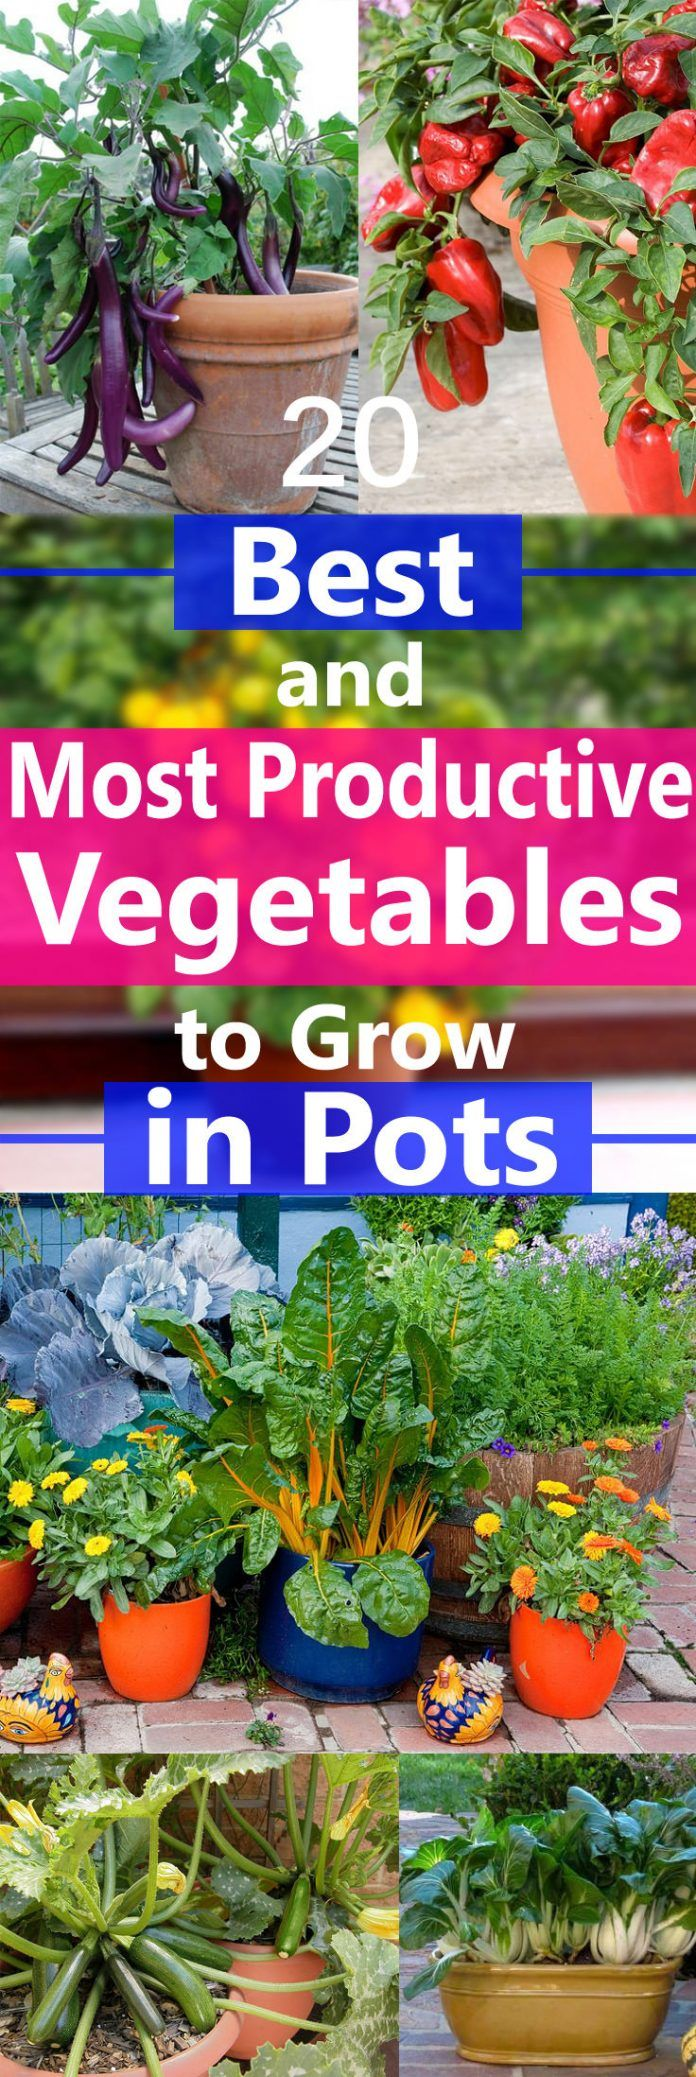 Best Vegetables to Grow in Pots | Most Productive Vegetables for Containers